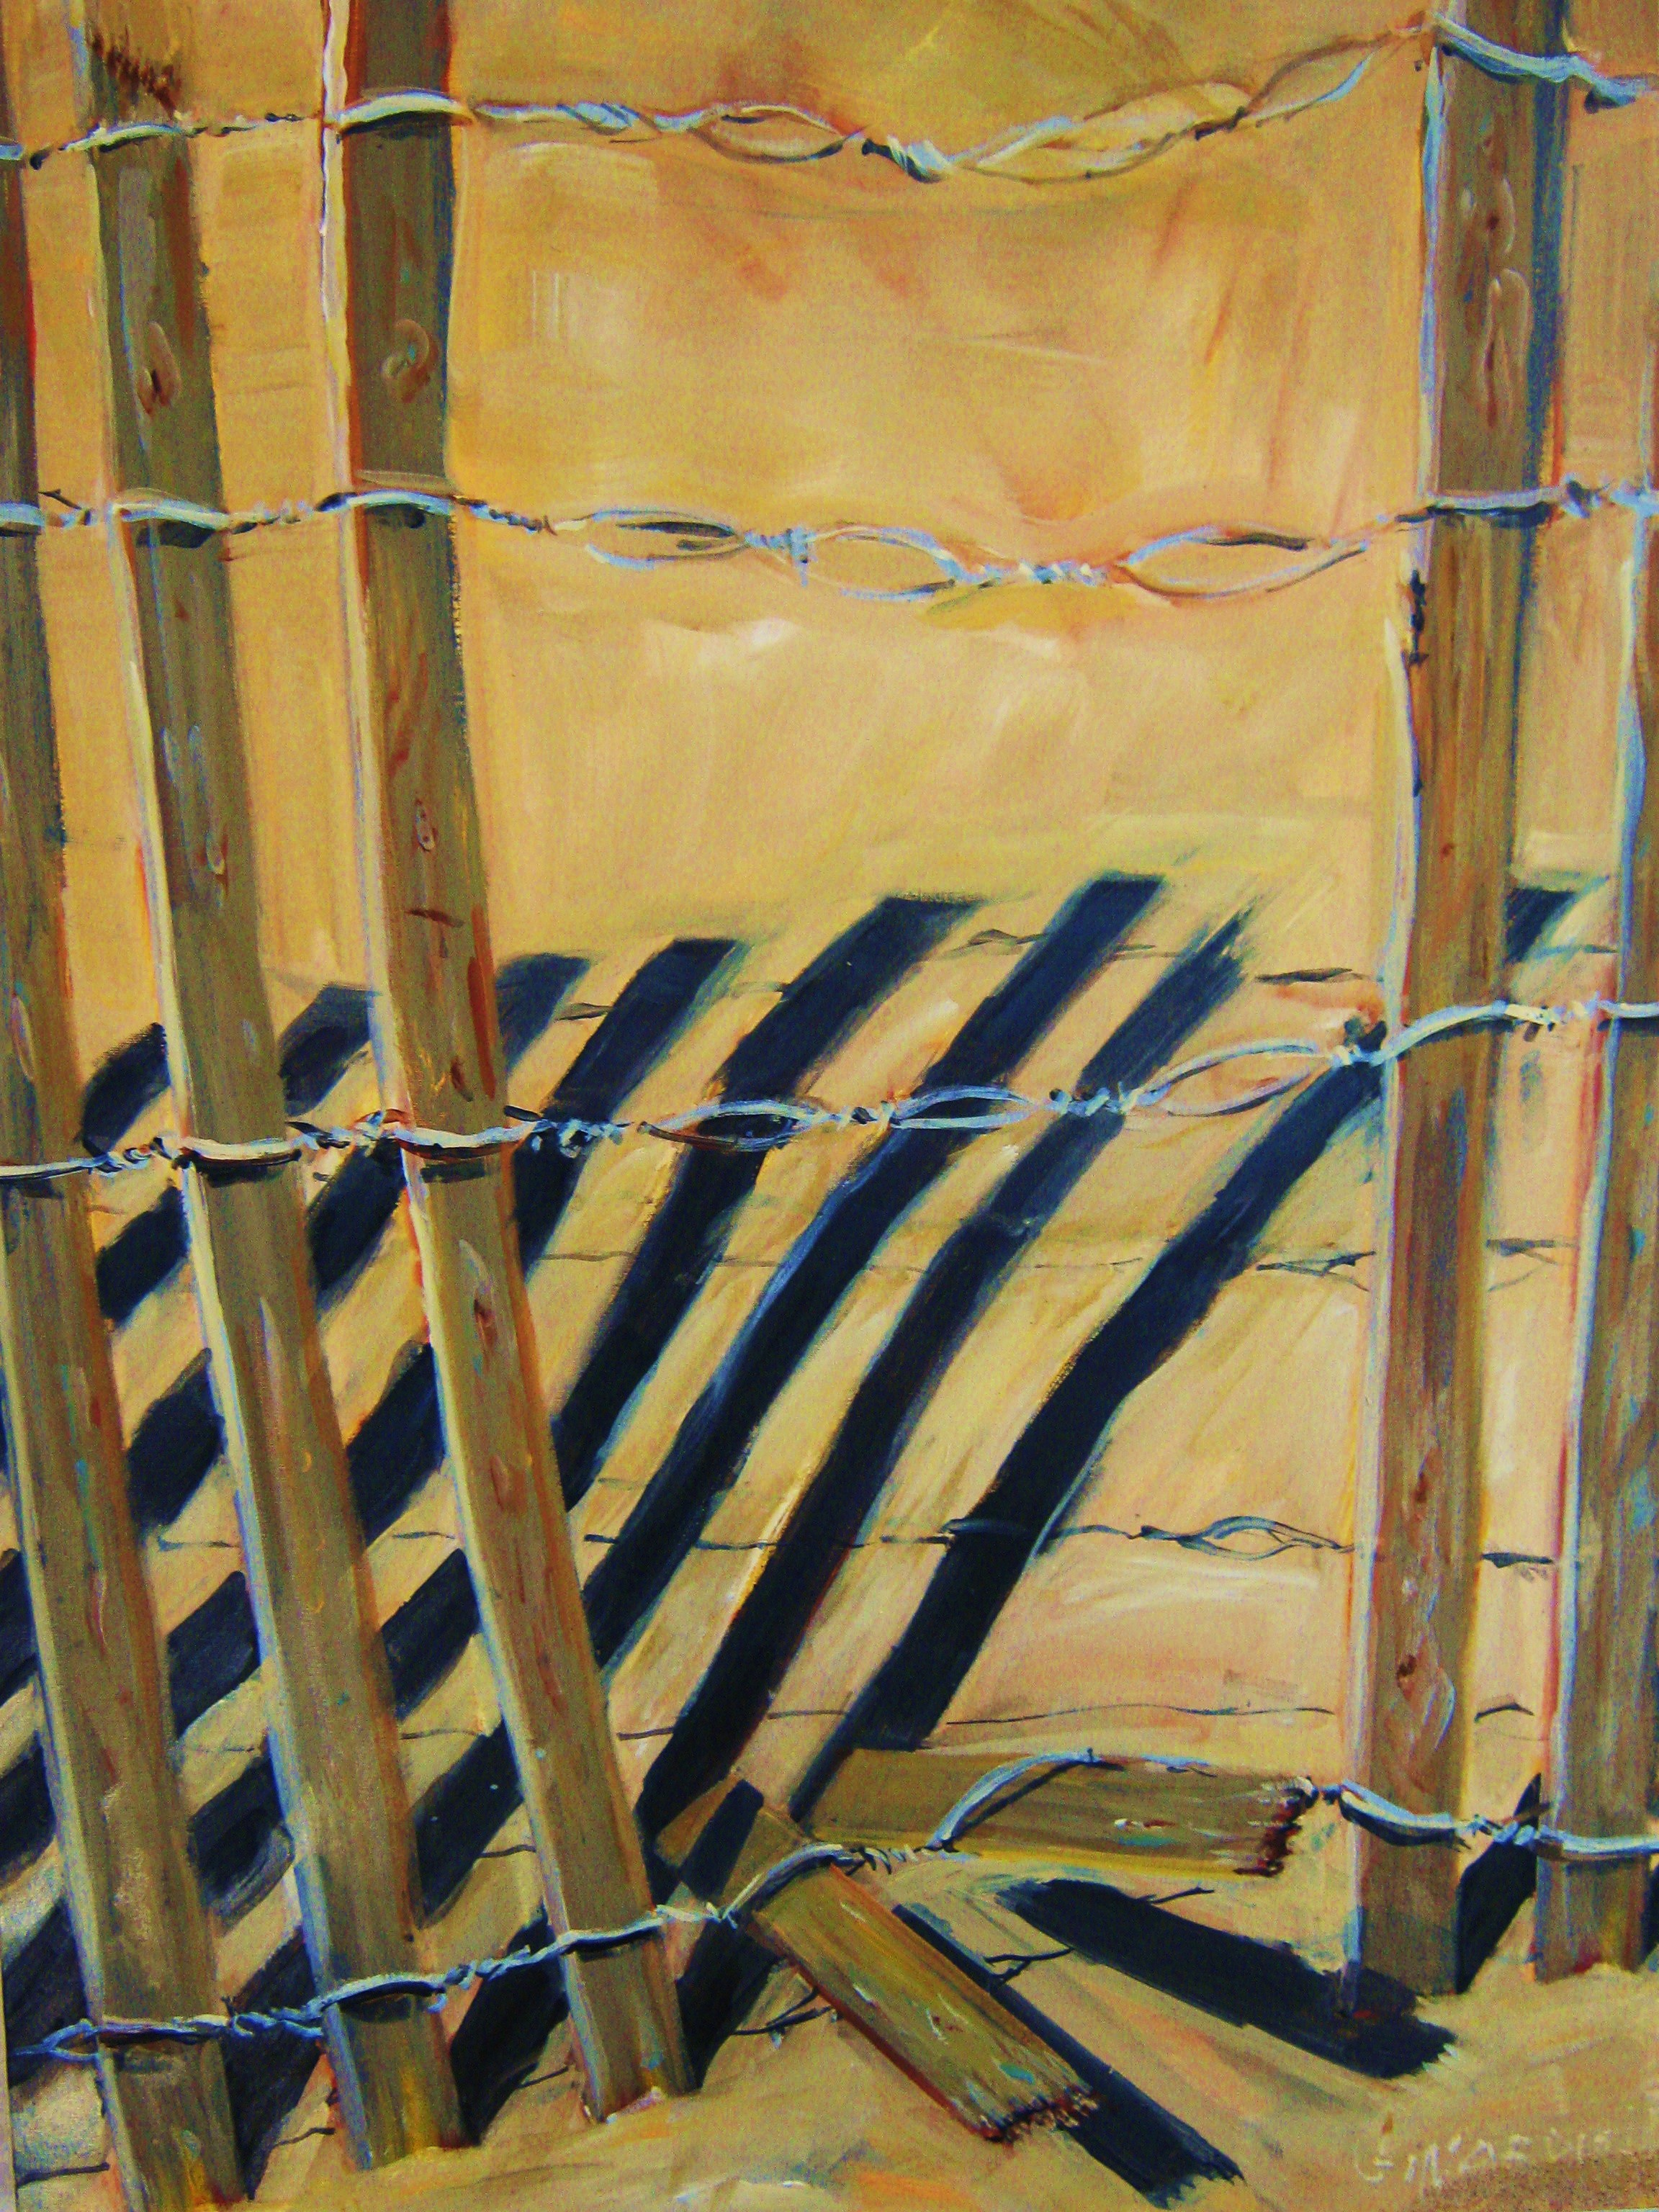 Beach Fence  40 x 30 inches, oil on canvas